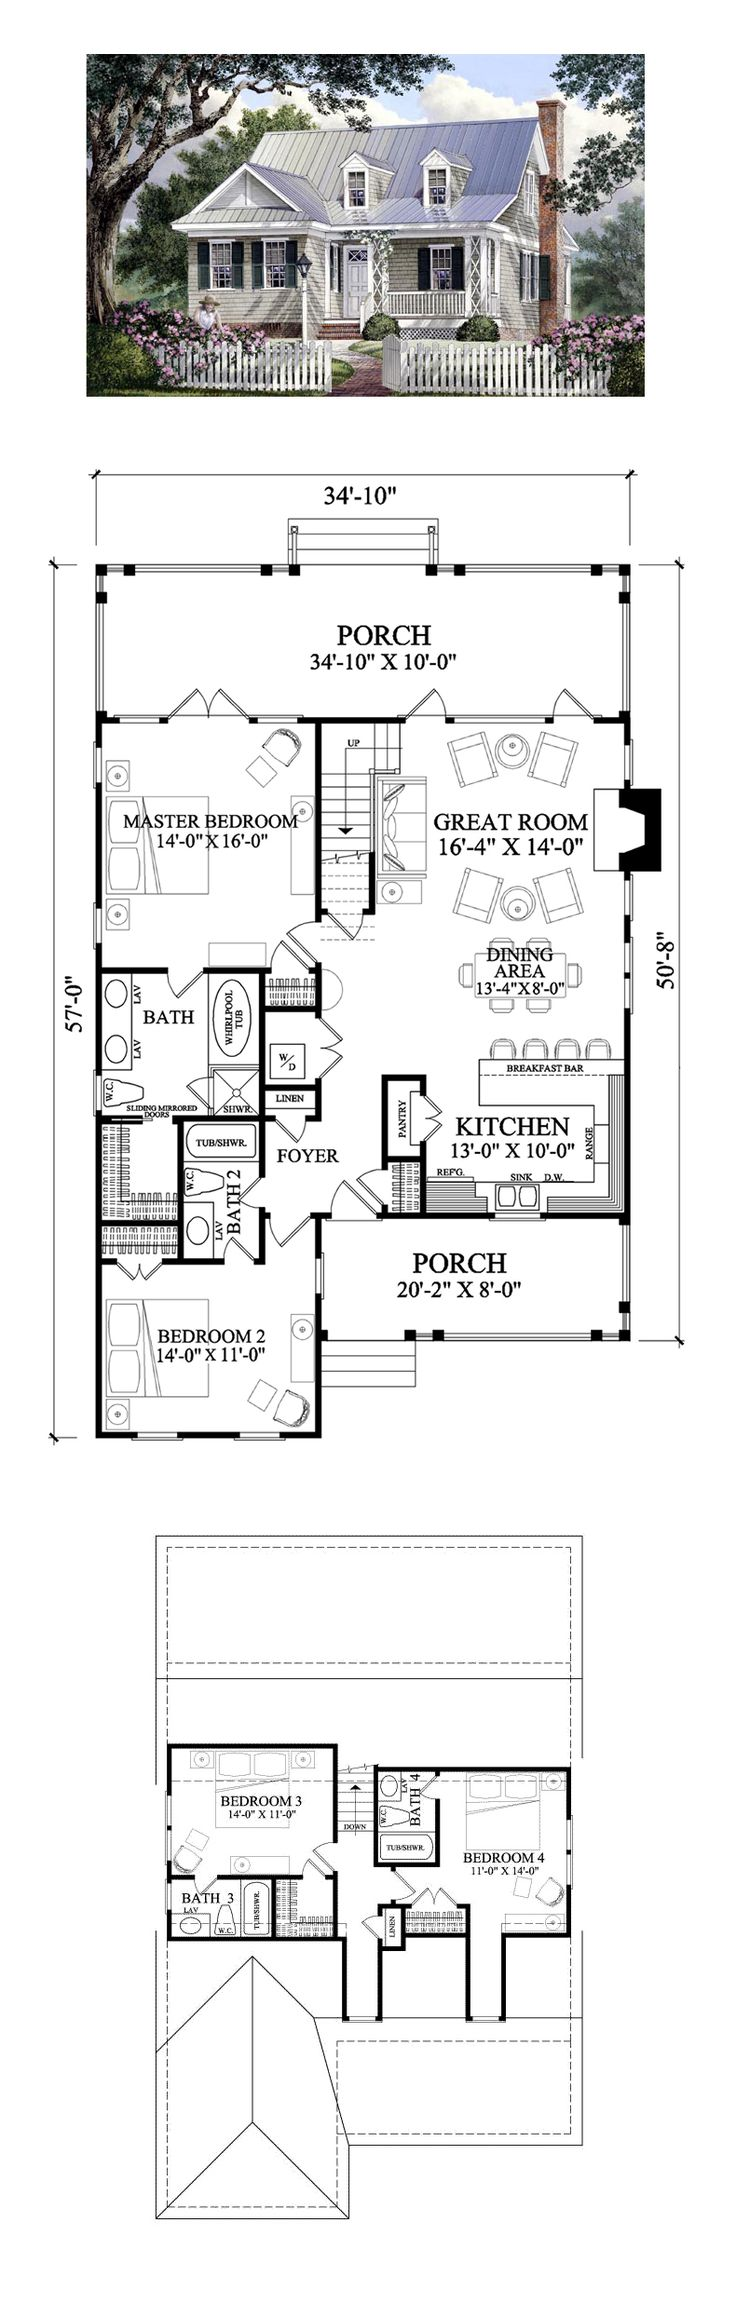 53 best Cape Cod House Plans images on Pinterest | Cape cod homes ...